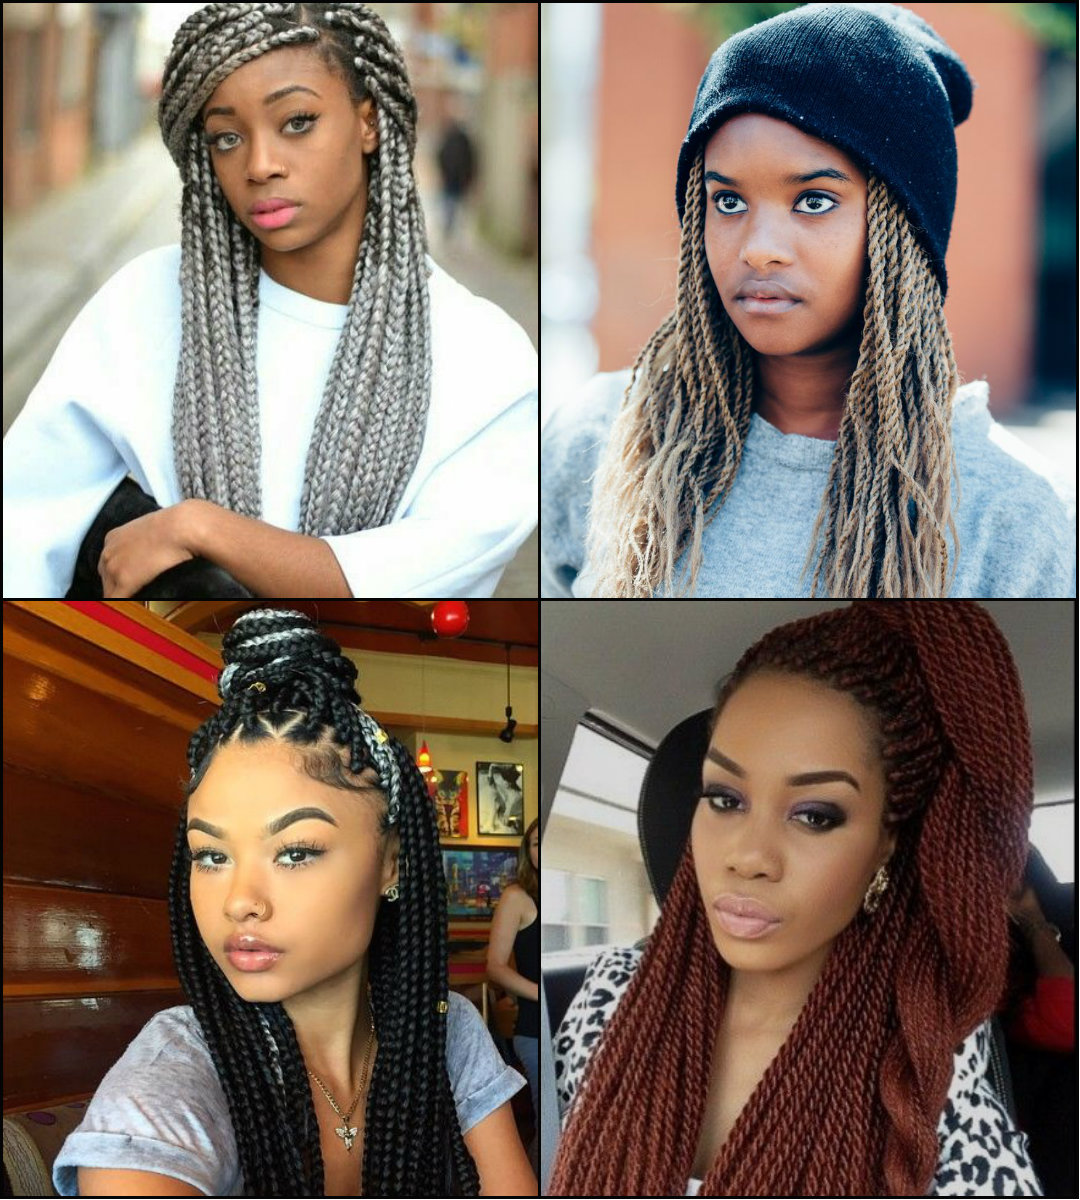 Swell Twists And Braids Black Hairstyles 2017 Hairstyles 2016 Hair Hairstyle Inspiration Daily Dogsangcom